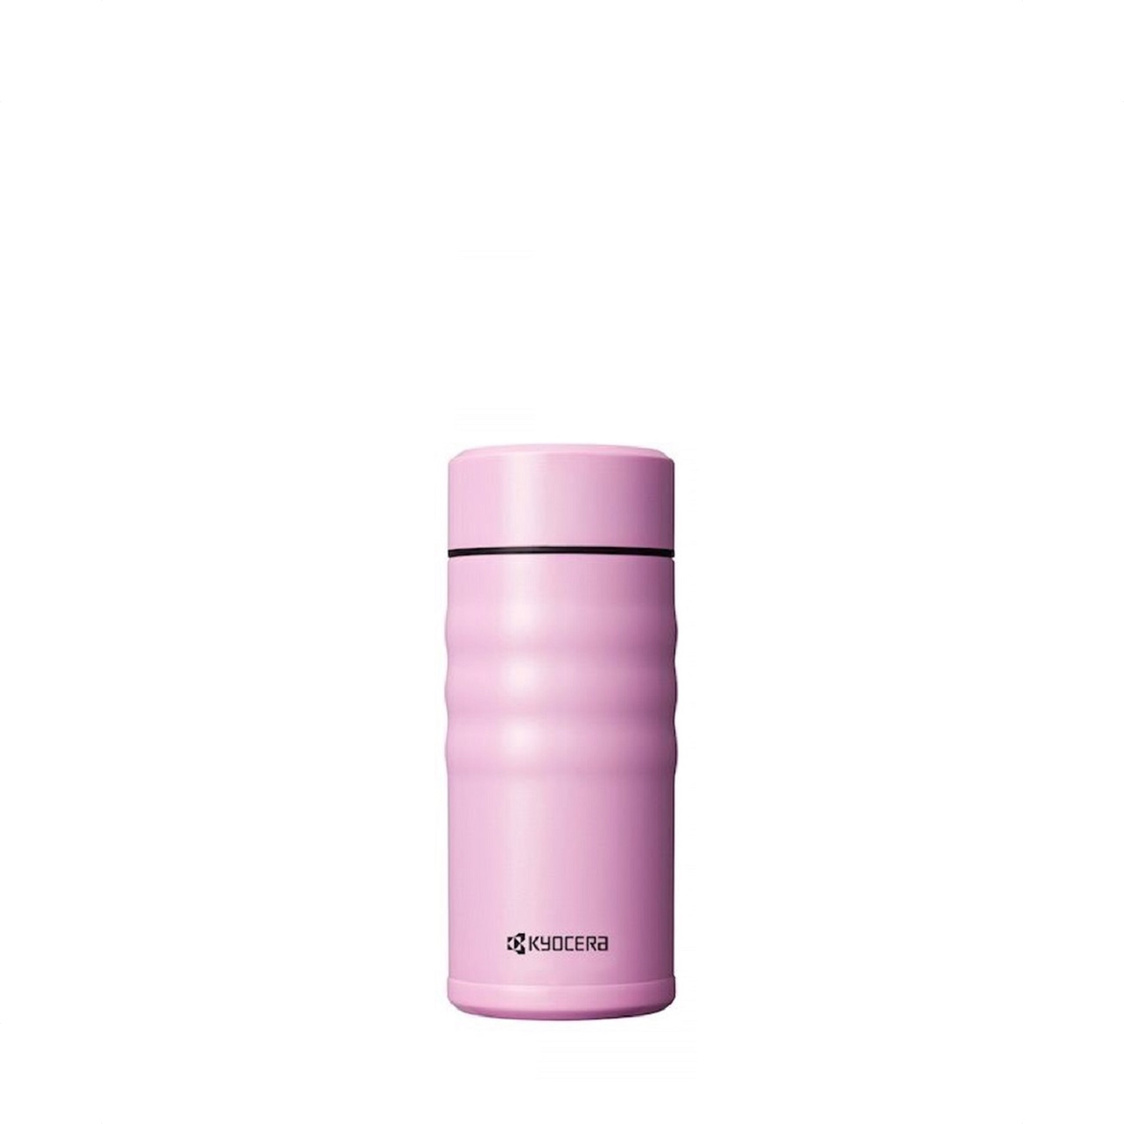 Advanced Ceramic Coated Cerabrid Mug Pink 350ml